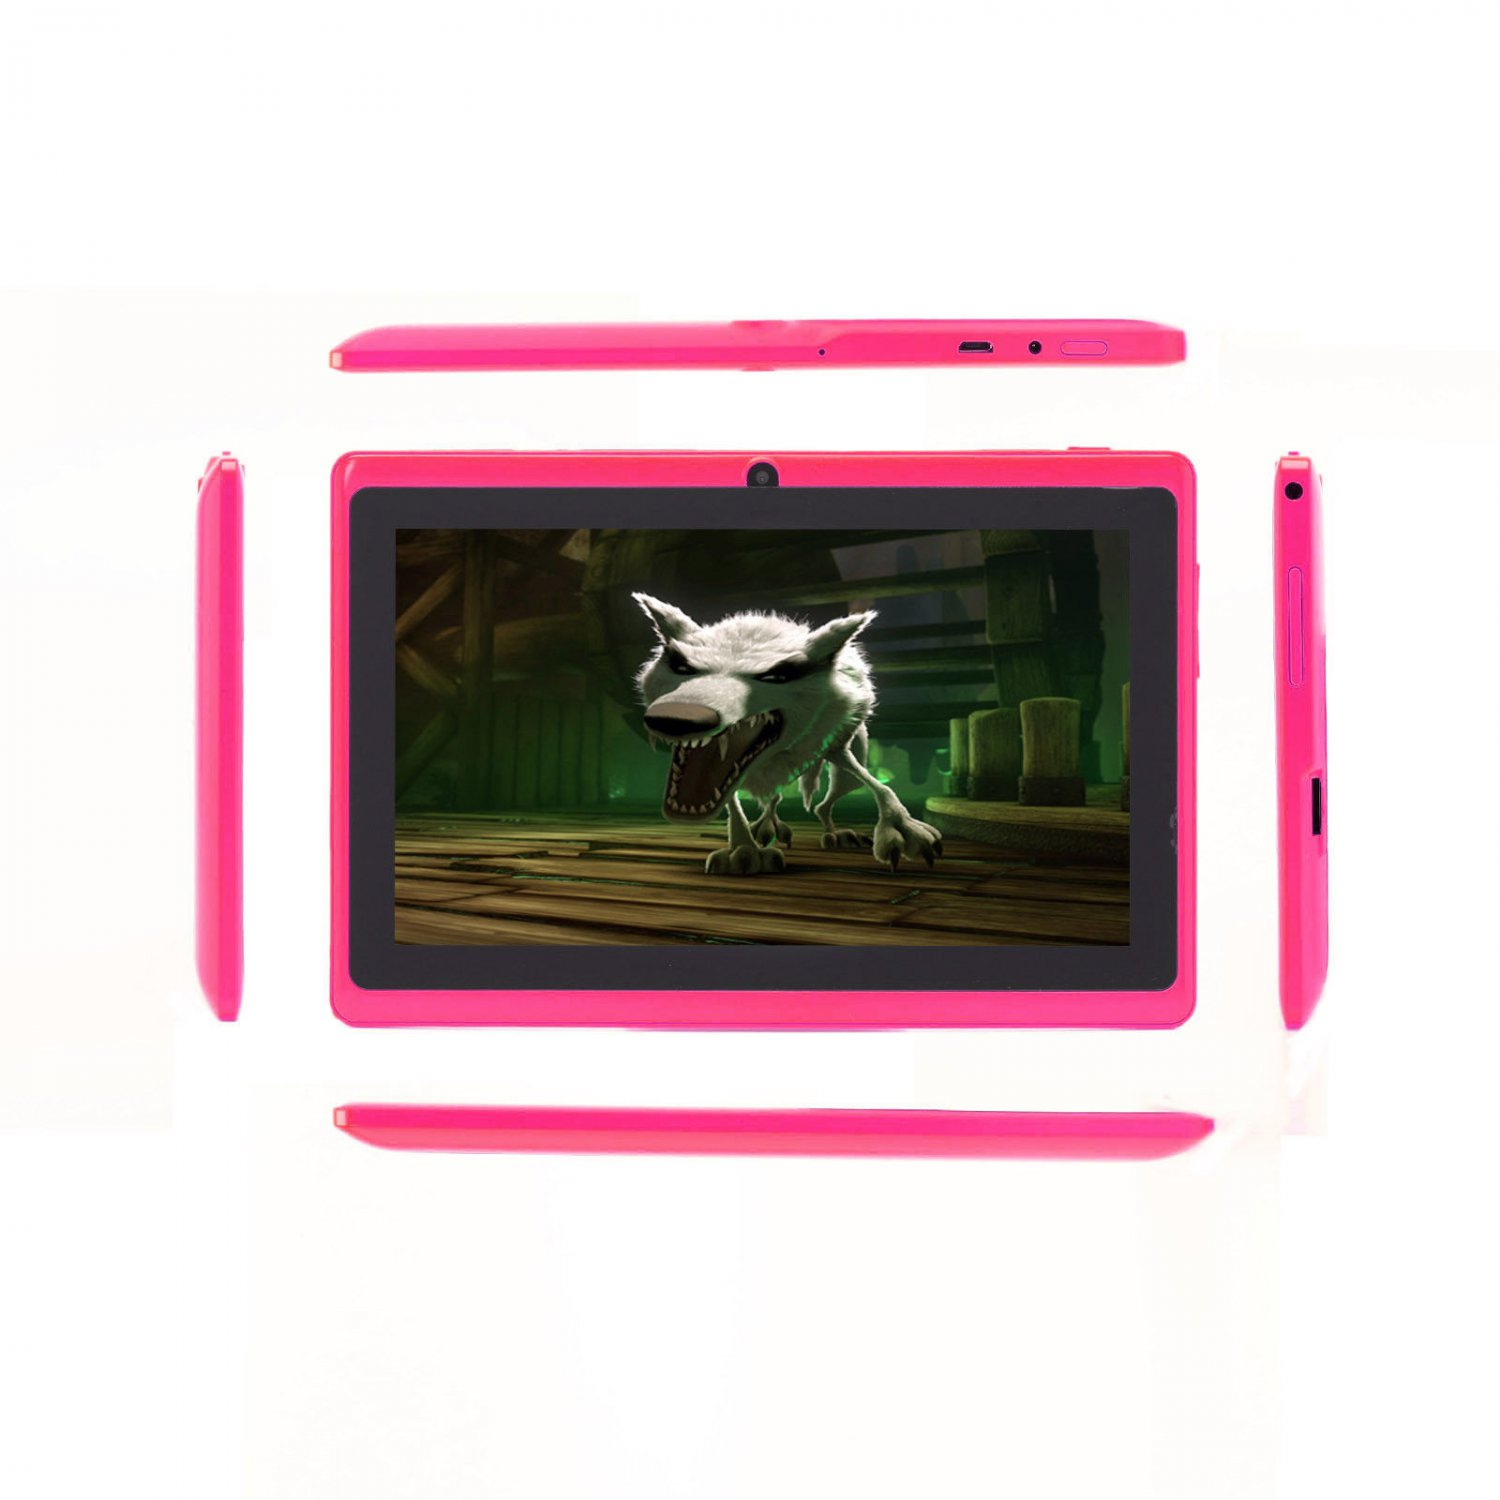 "IRULU eXpro X1 Tablet PC Pink 7"" Android 4.2 Dual Core & Camera 16GB"